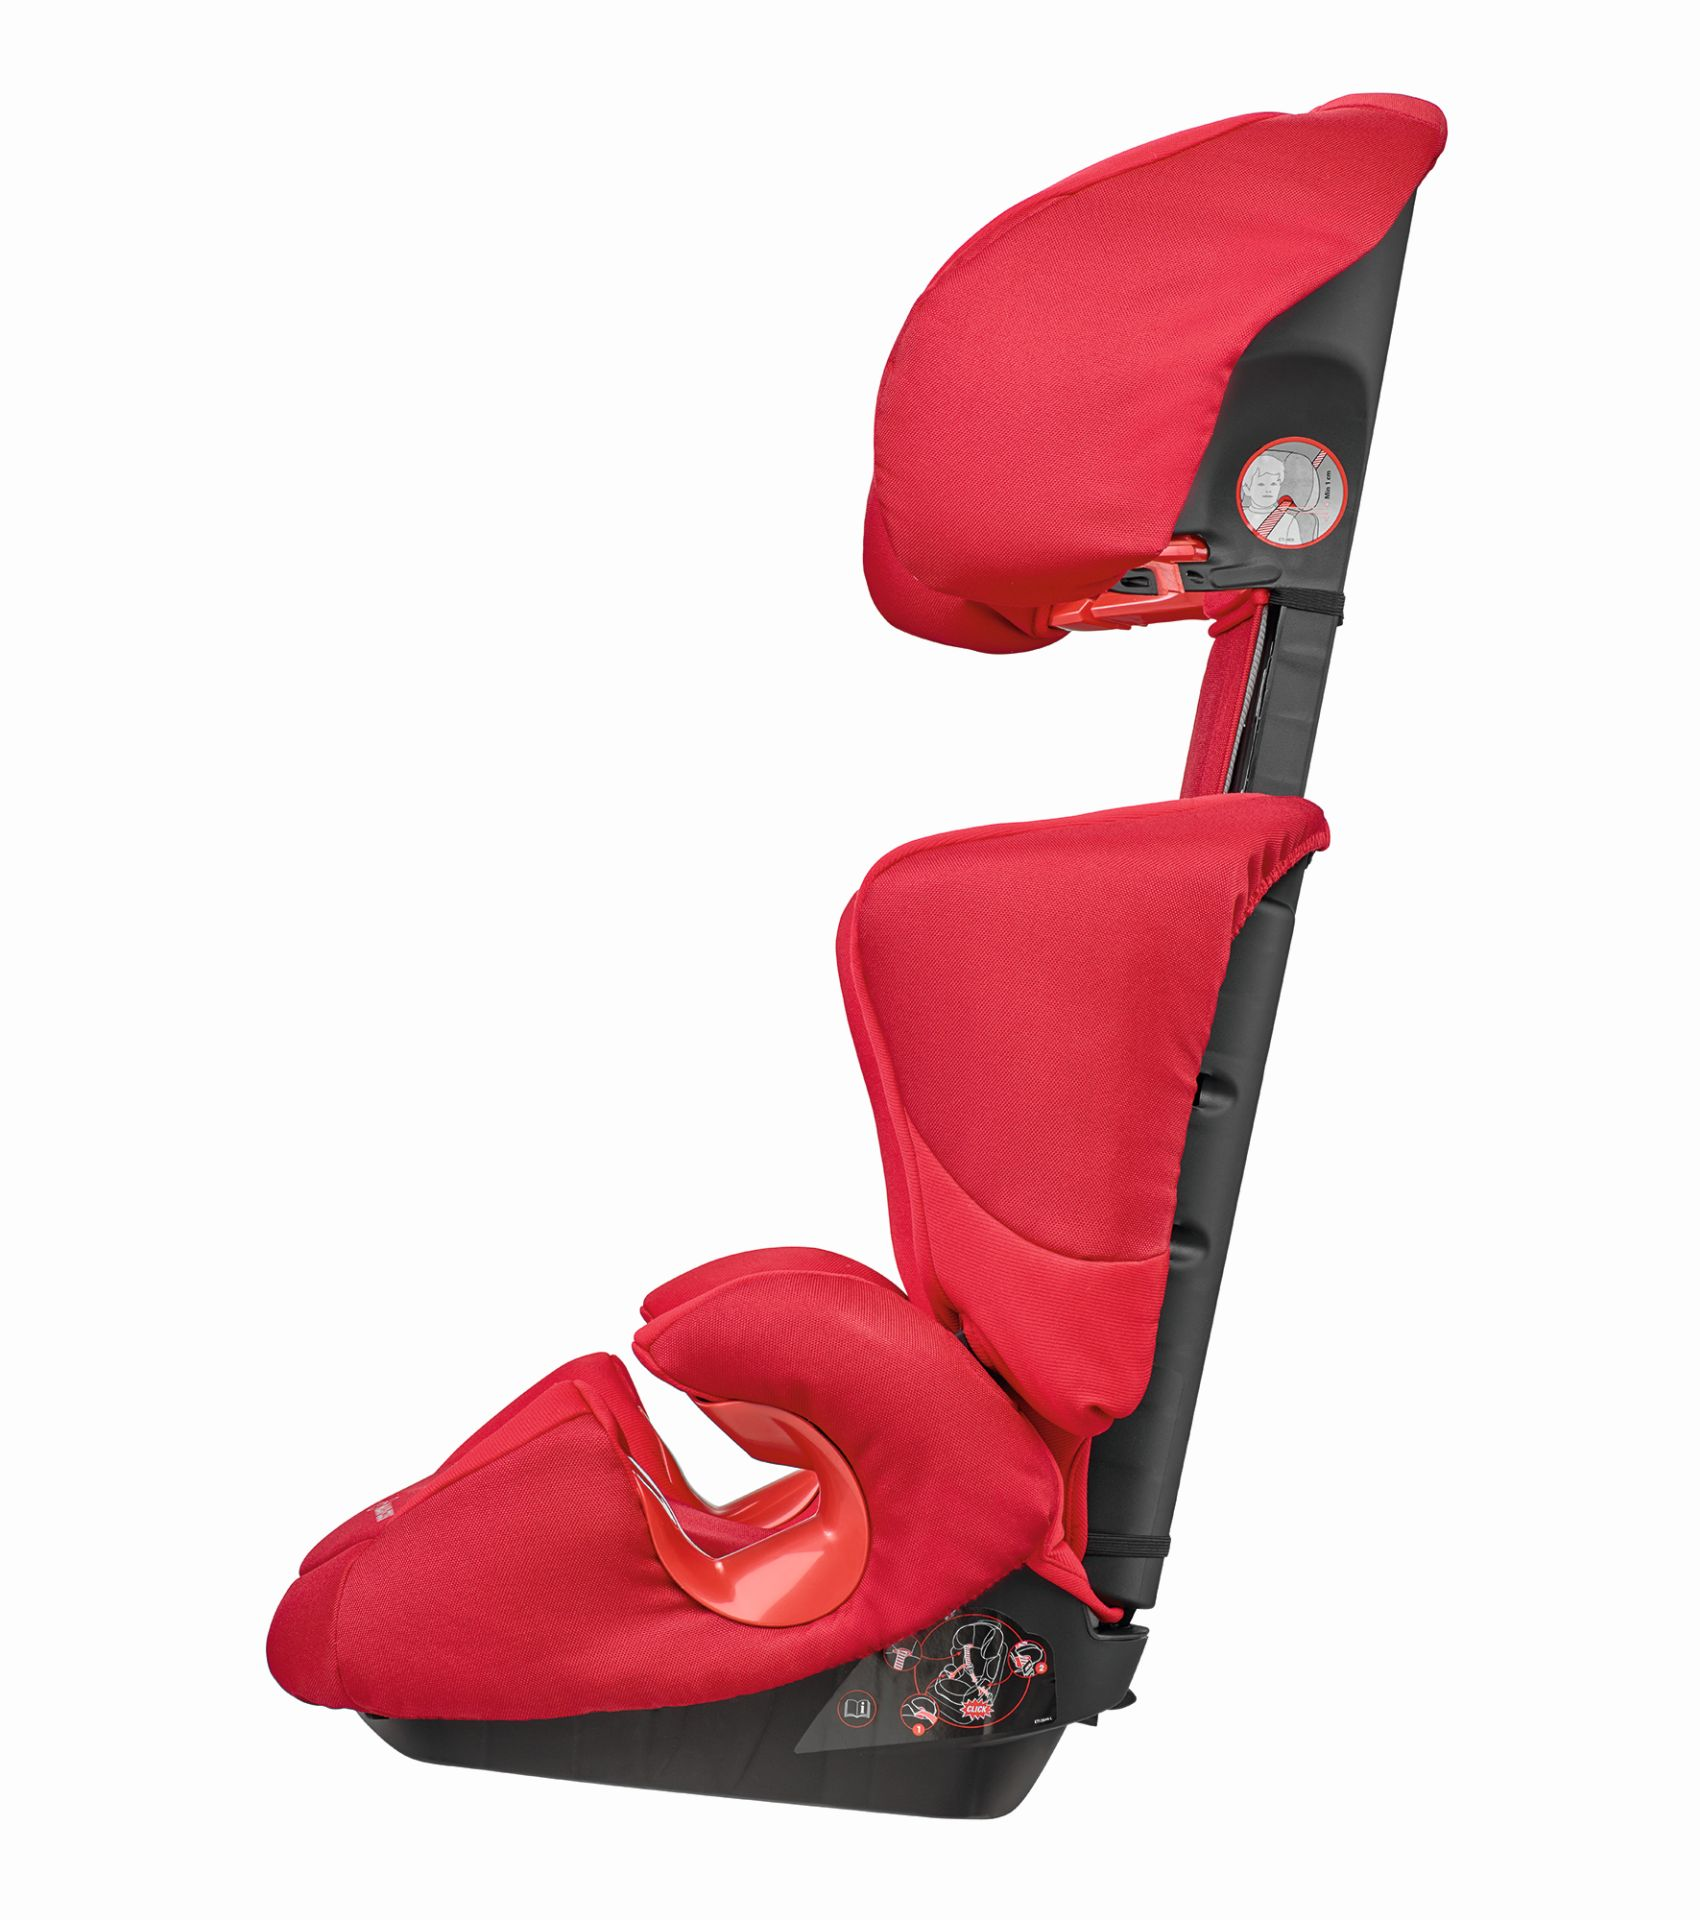 maxi cosi child car seat rodi xp 2 2017 poppy red buy at kidsroom car seats. Black Bedroom Furniture Sets. Home Design Ideas